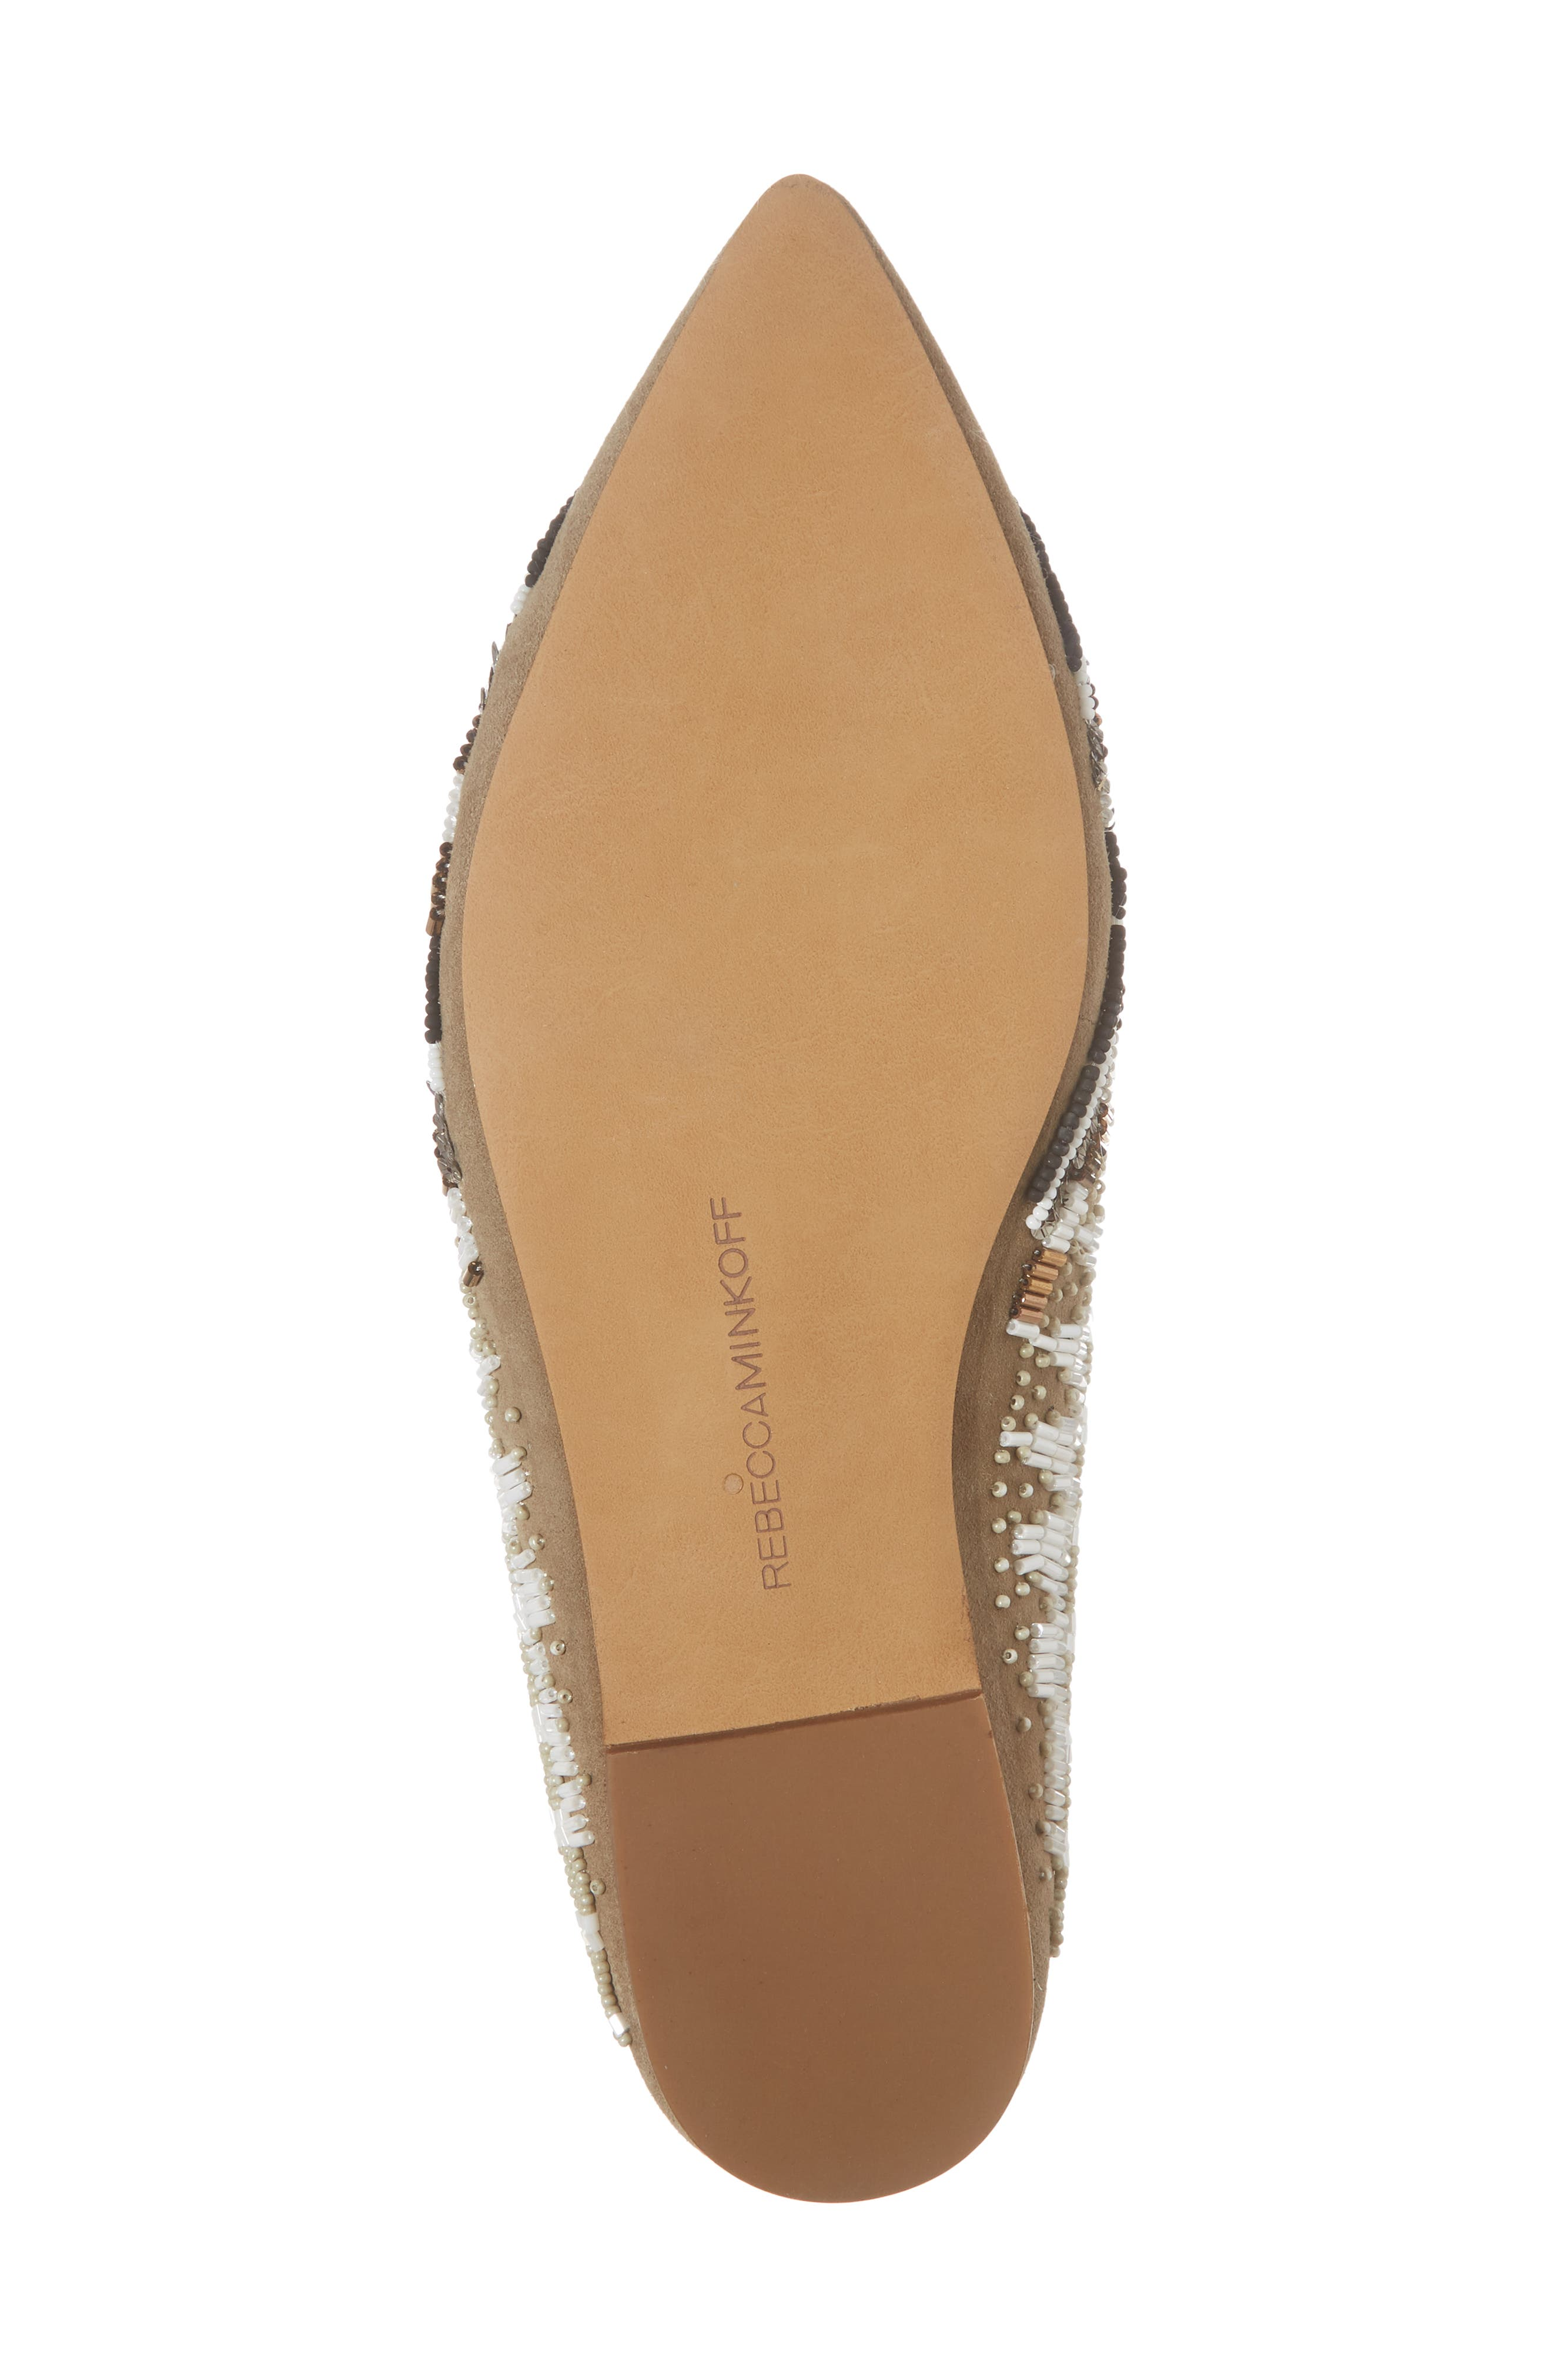 Roxane Beaded Flat Mule,                             Alternate thumbnail 6, color,                             Taupe Suede